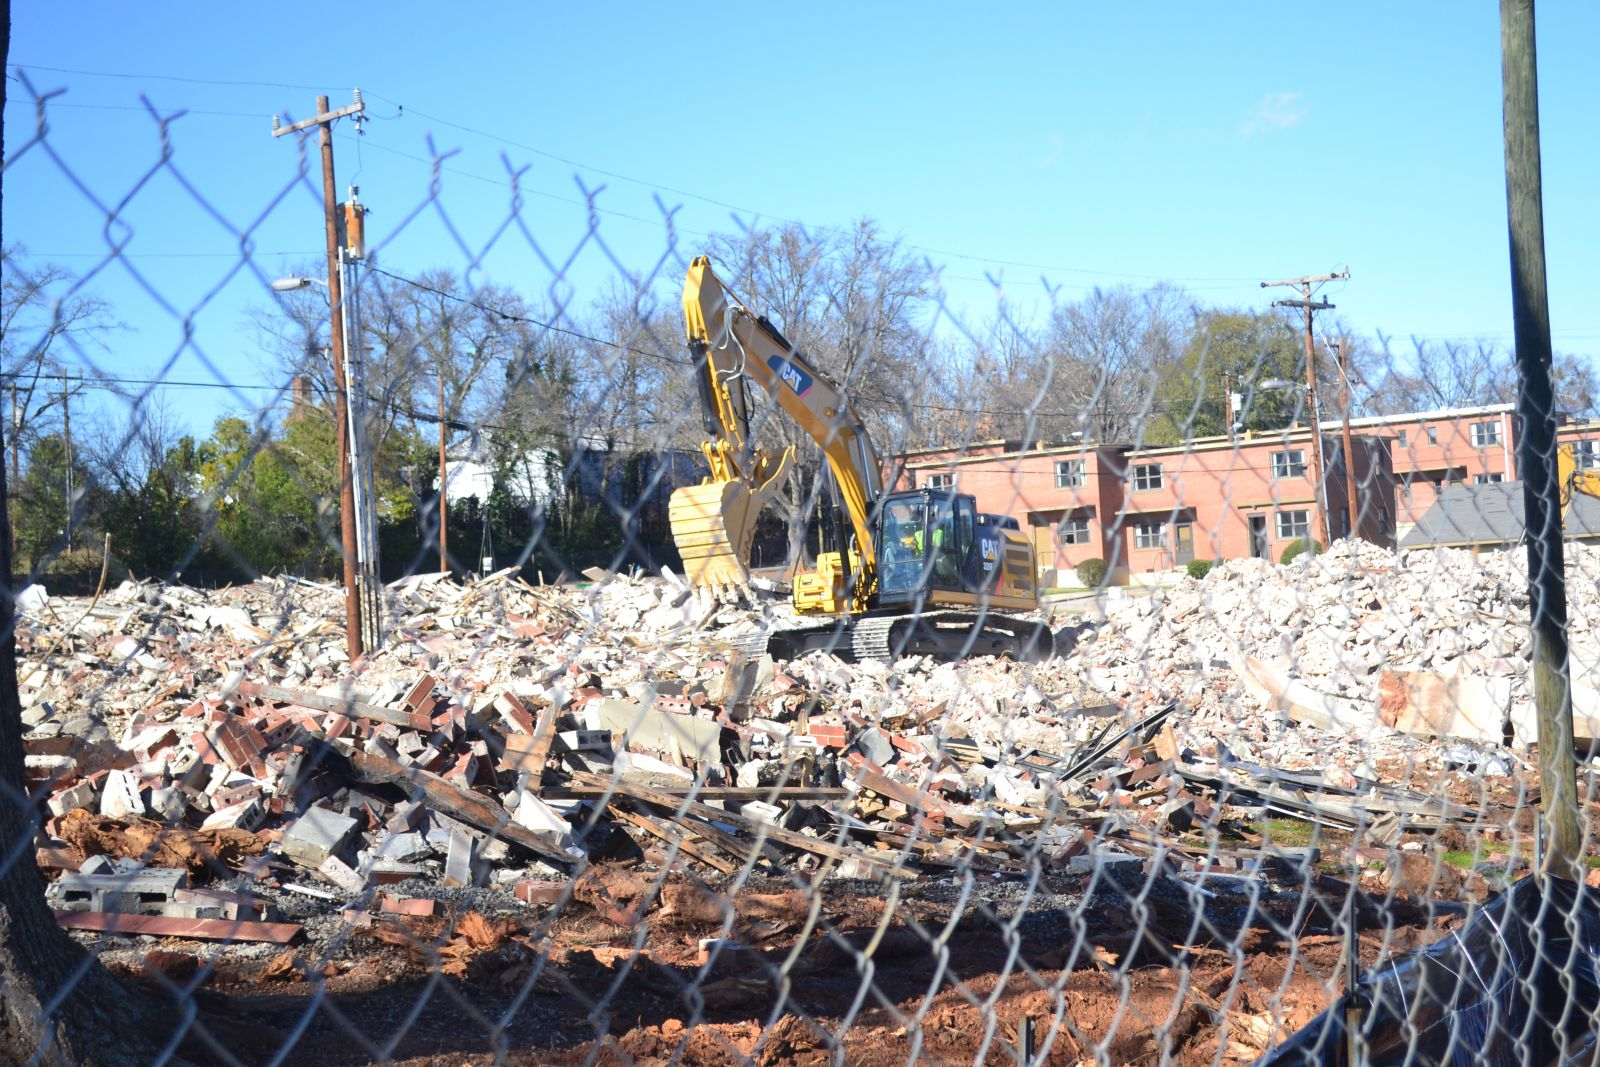 Oakview Apartments are being torn down and a community center is planned for the location in the Northside community of Spartanburg. (Photo/Teresa Cutlip)